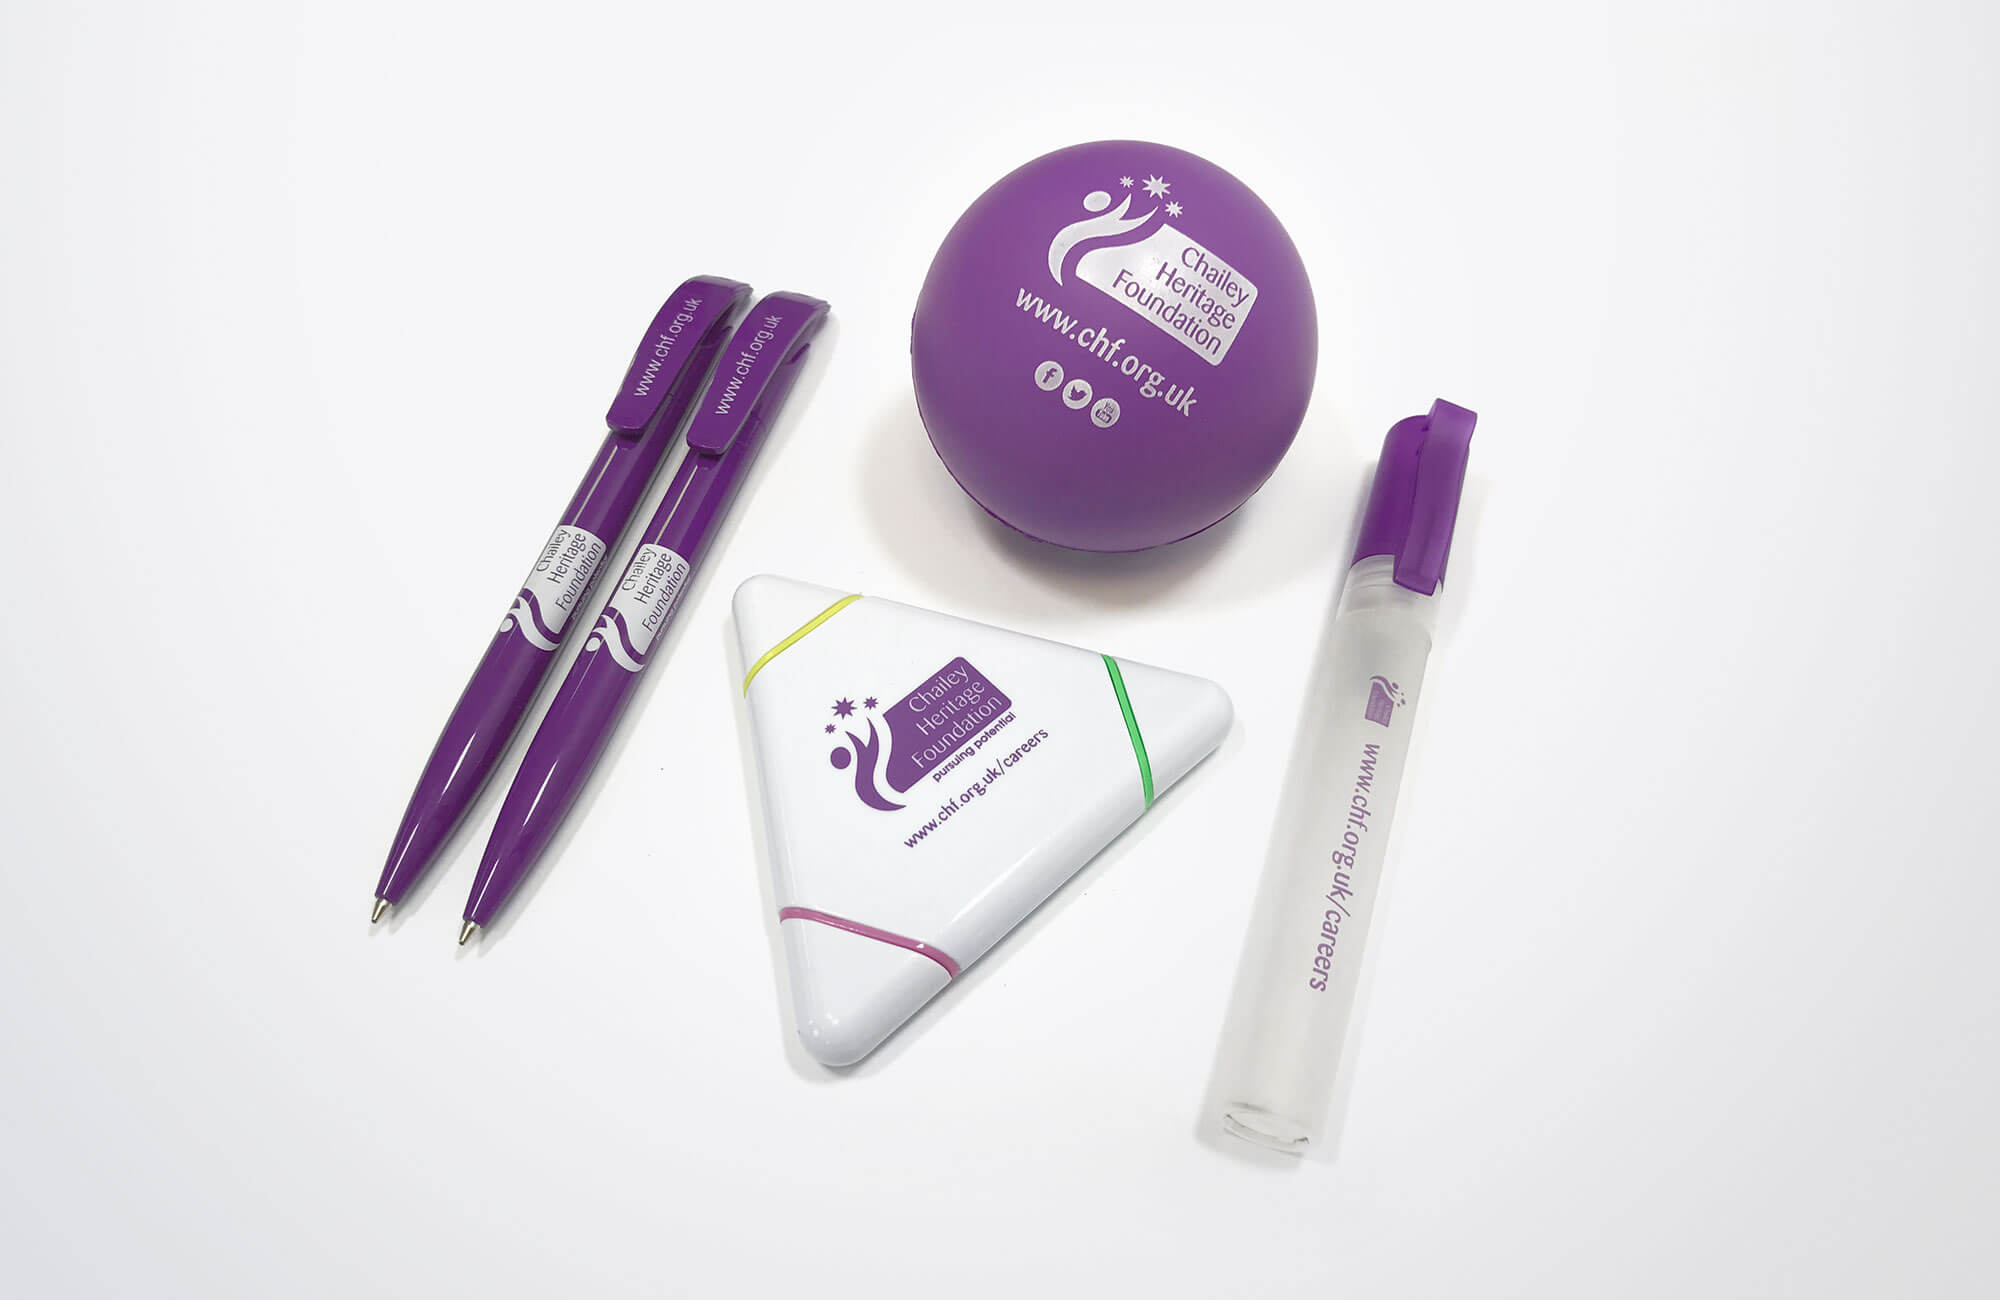 Chailey Heritage Branded Promotional Merchandise